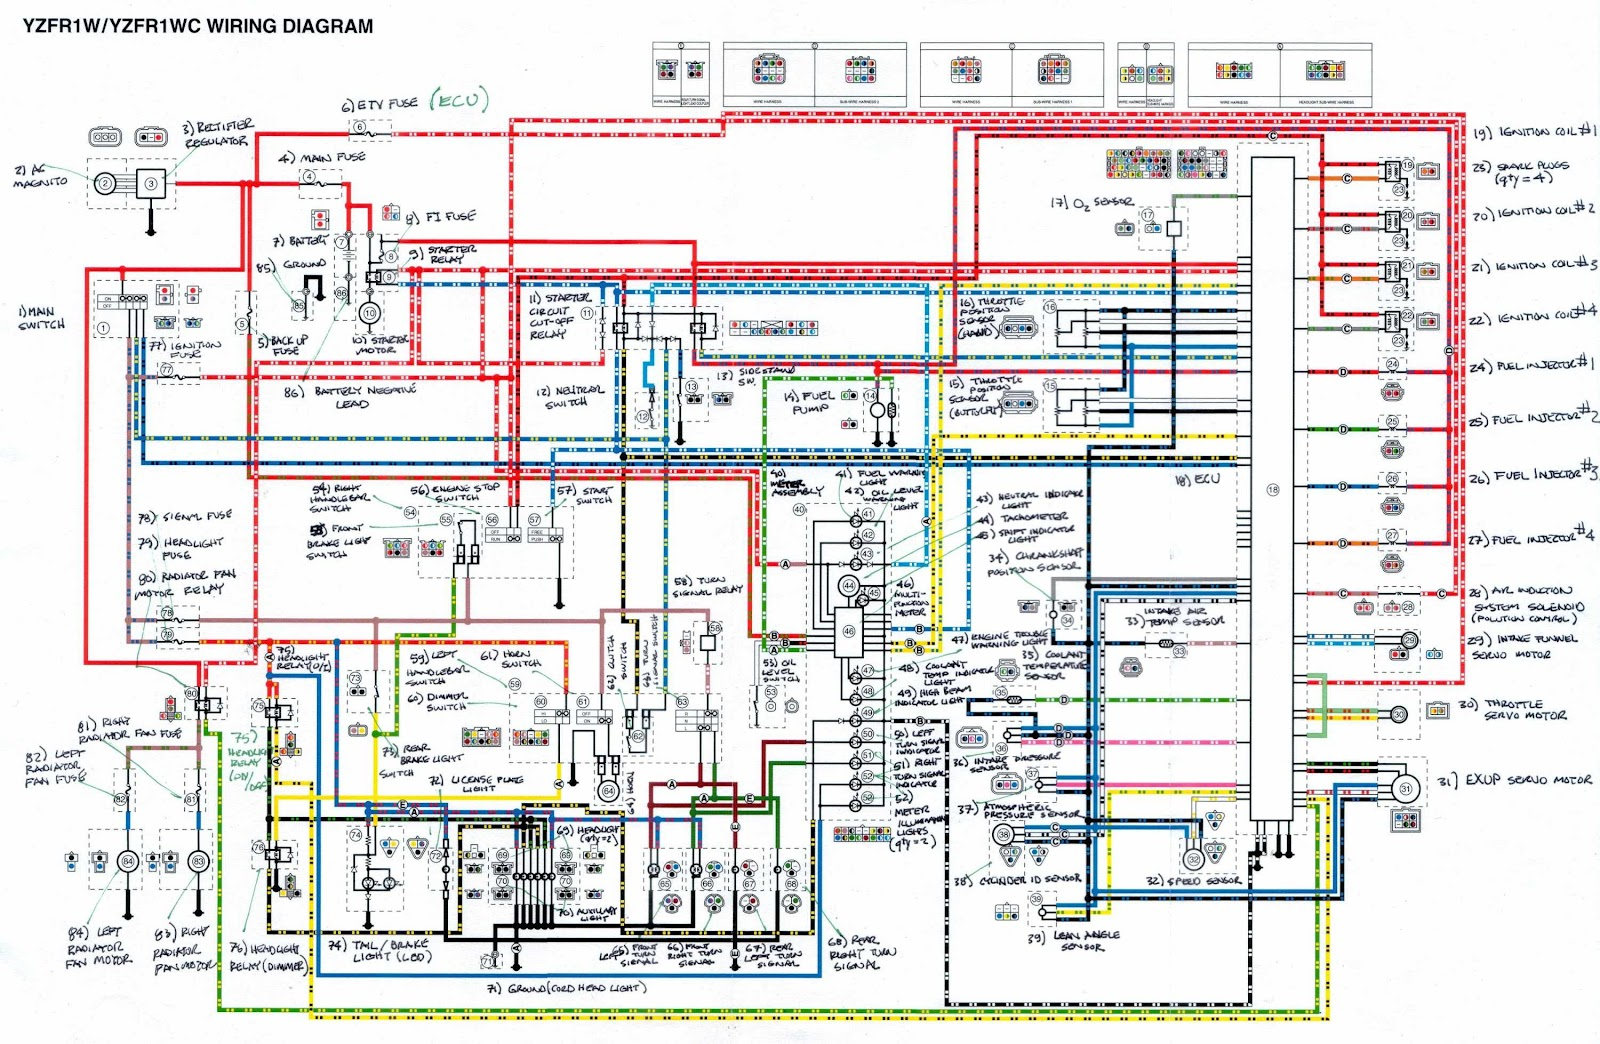 yamaha yzf r1 motorcycle wiring diagram all about wiring 1992 chevy 1500  stereo wiring diagram 1992 gmc sierra 1500 wiring diagram